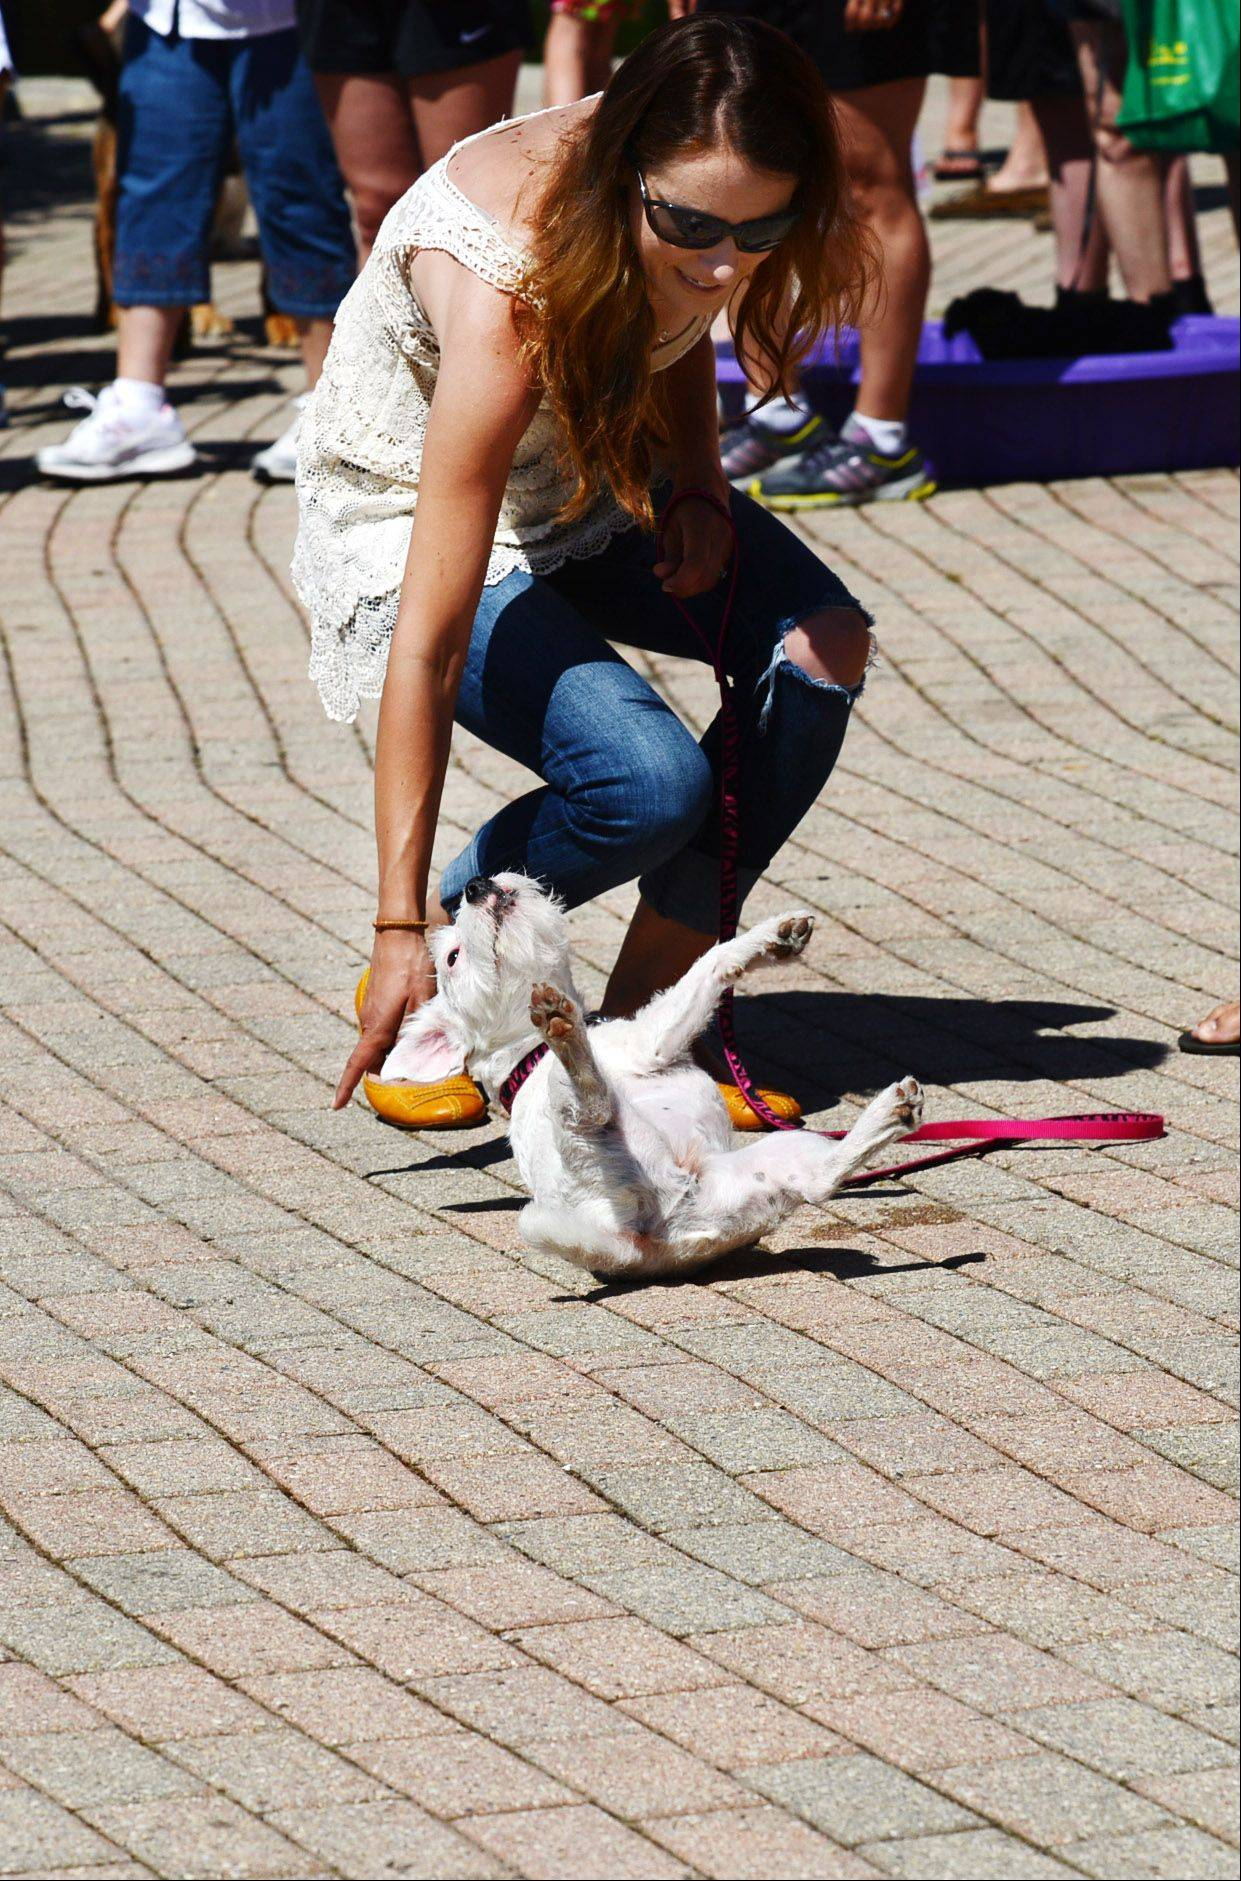 Aspen, a 1-year-old Jack Russell Terrier, rolls over for owner Jenny Bradley of Batavia at the Windmill City Festival on Saturday.